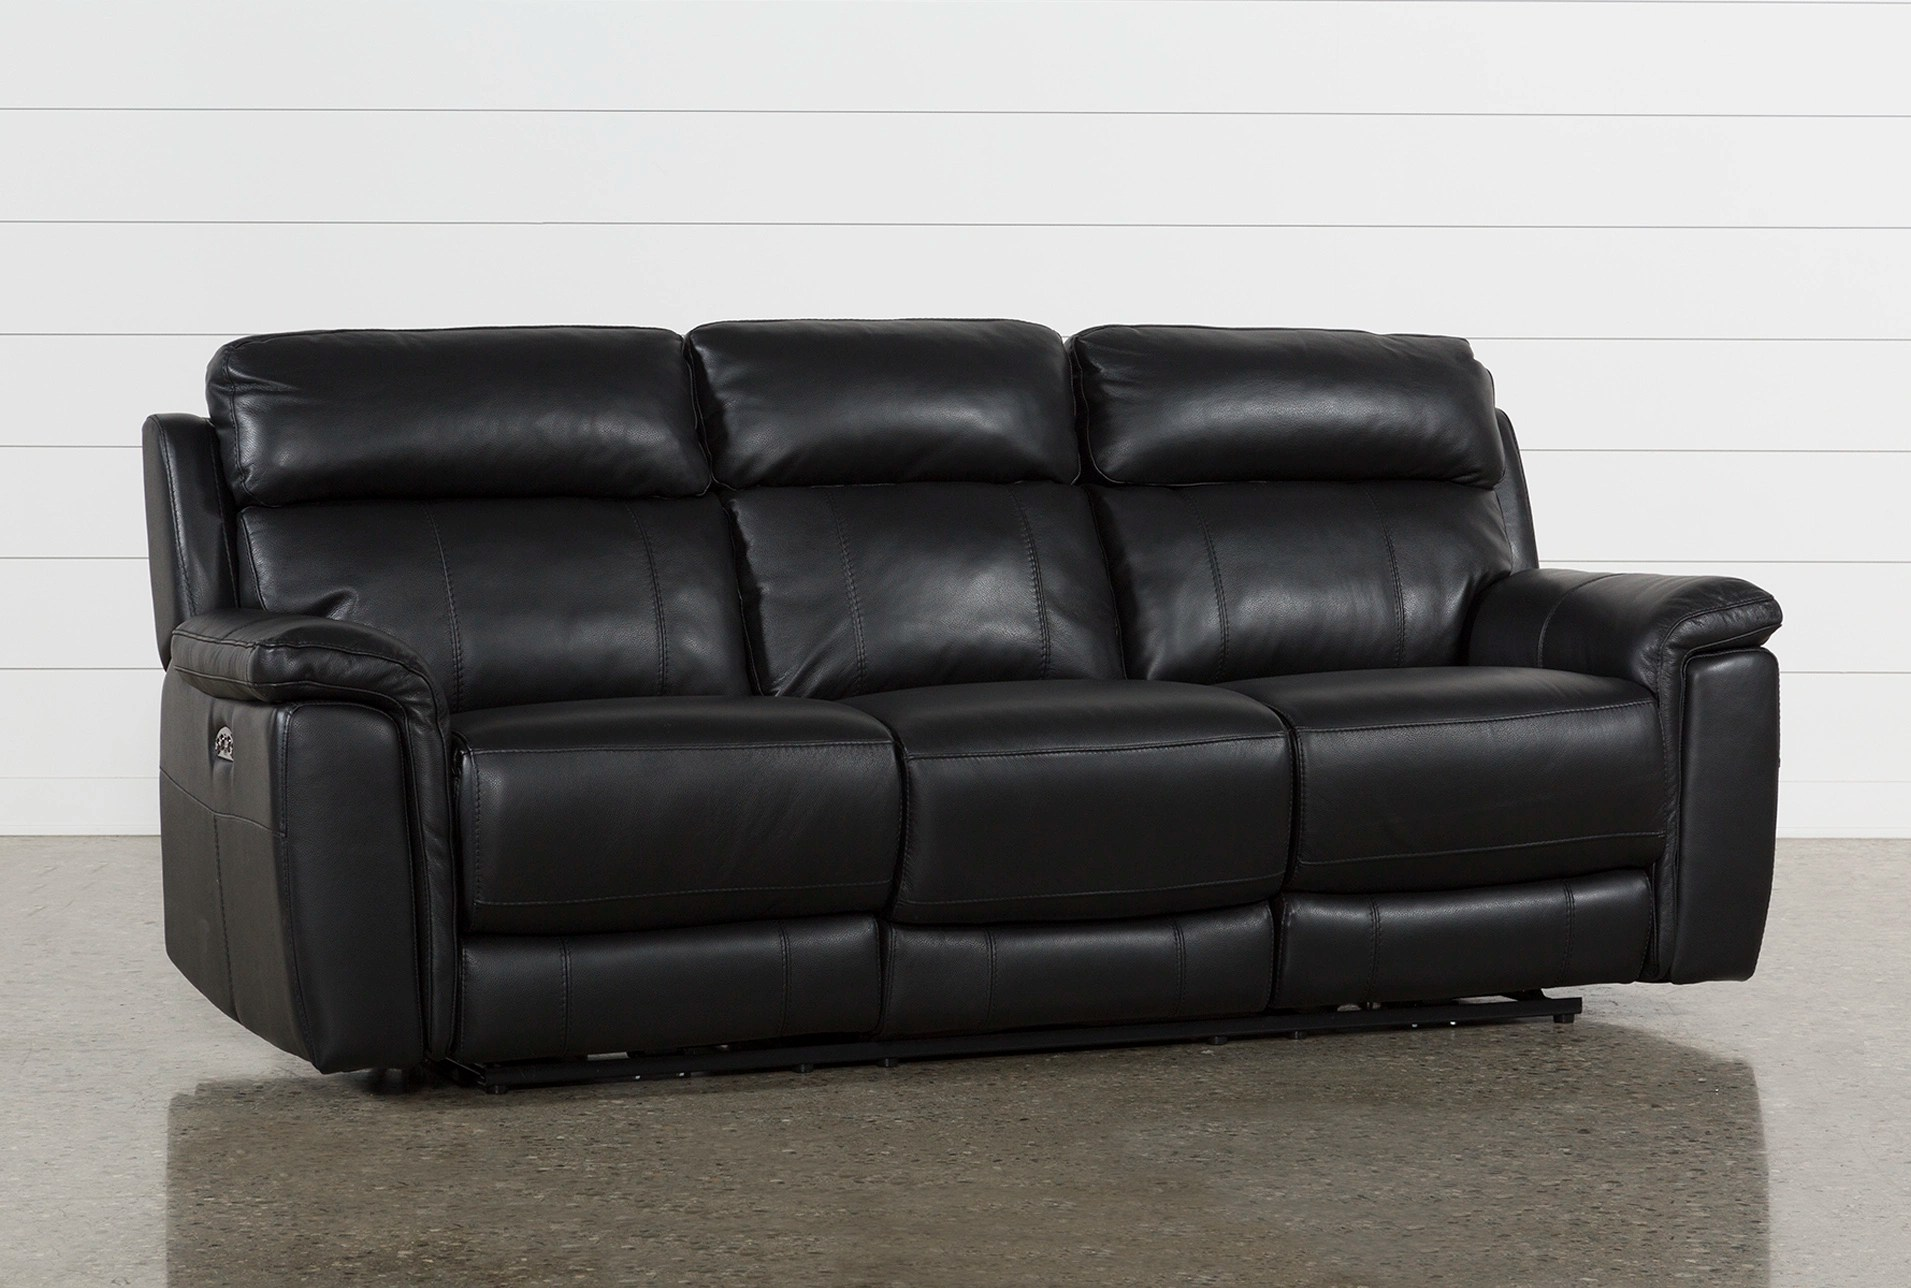 electric recliner sofa not working orlando pride boston breakers sofascore dino black leather power reclining w headrest usb amp qty 1 has been successfully added to your cart